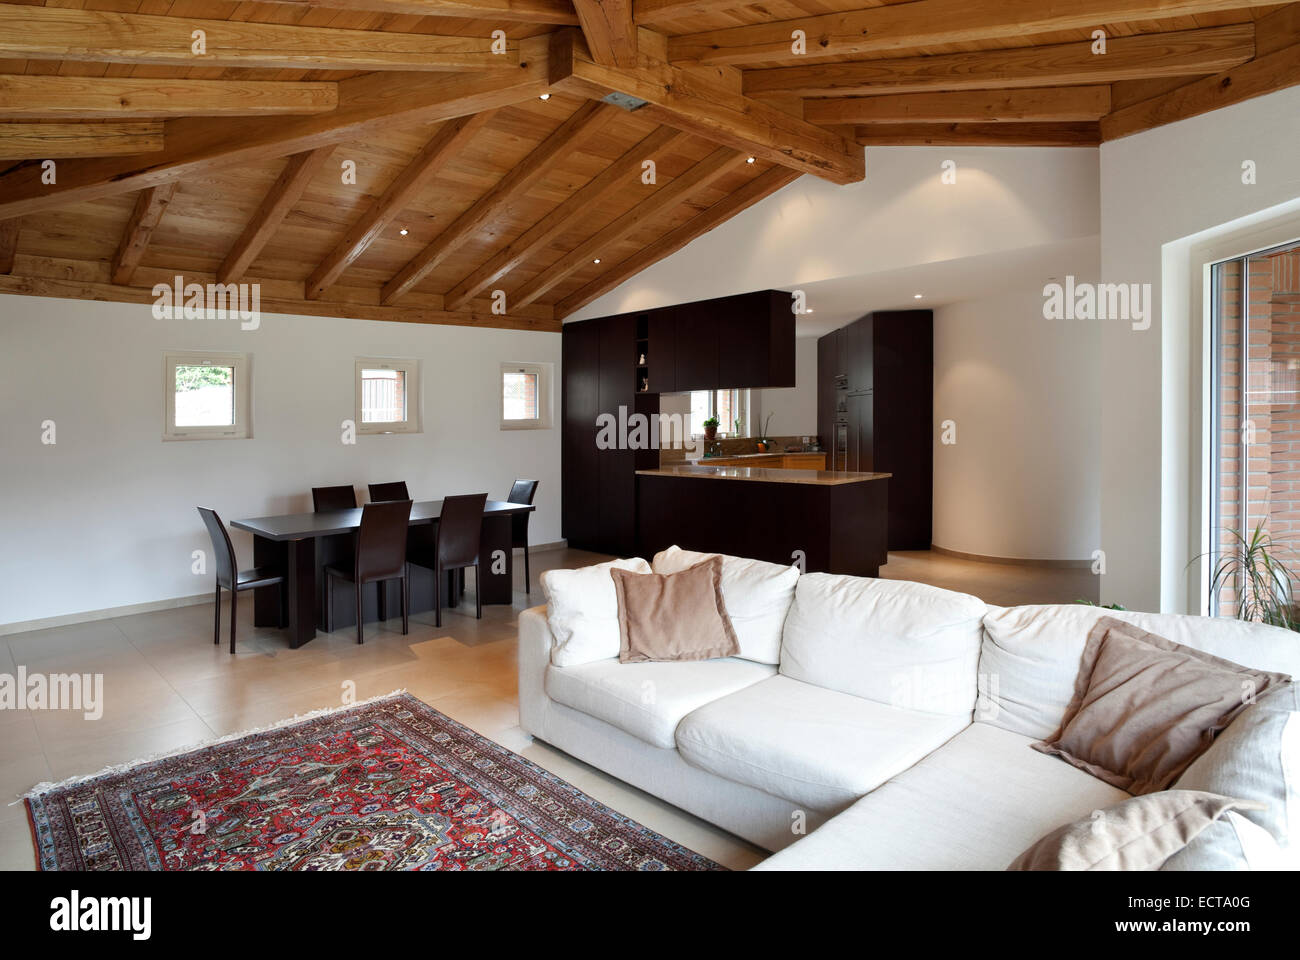 Open Living Home Roof Interior High Resolution Stock Photography And Images Alamy